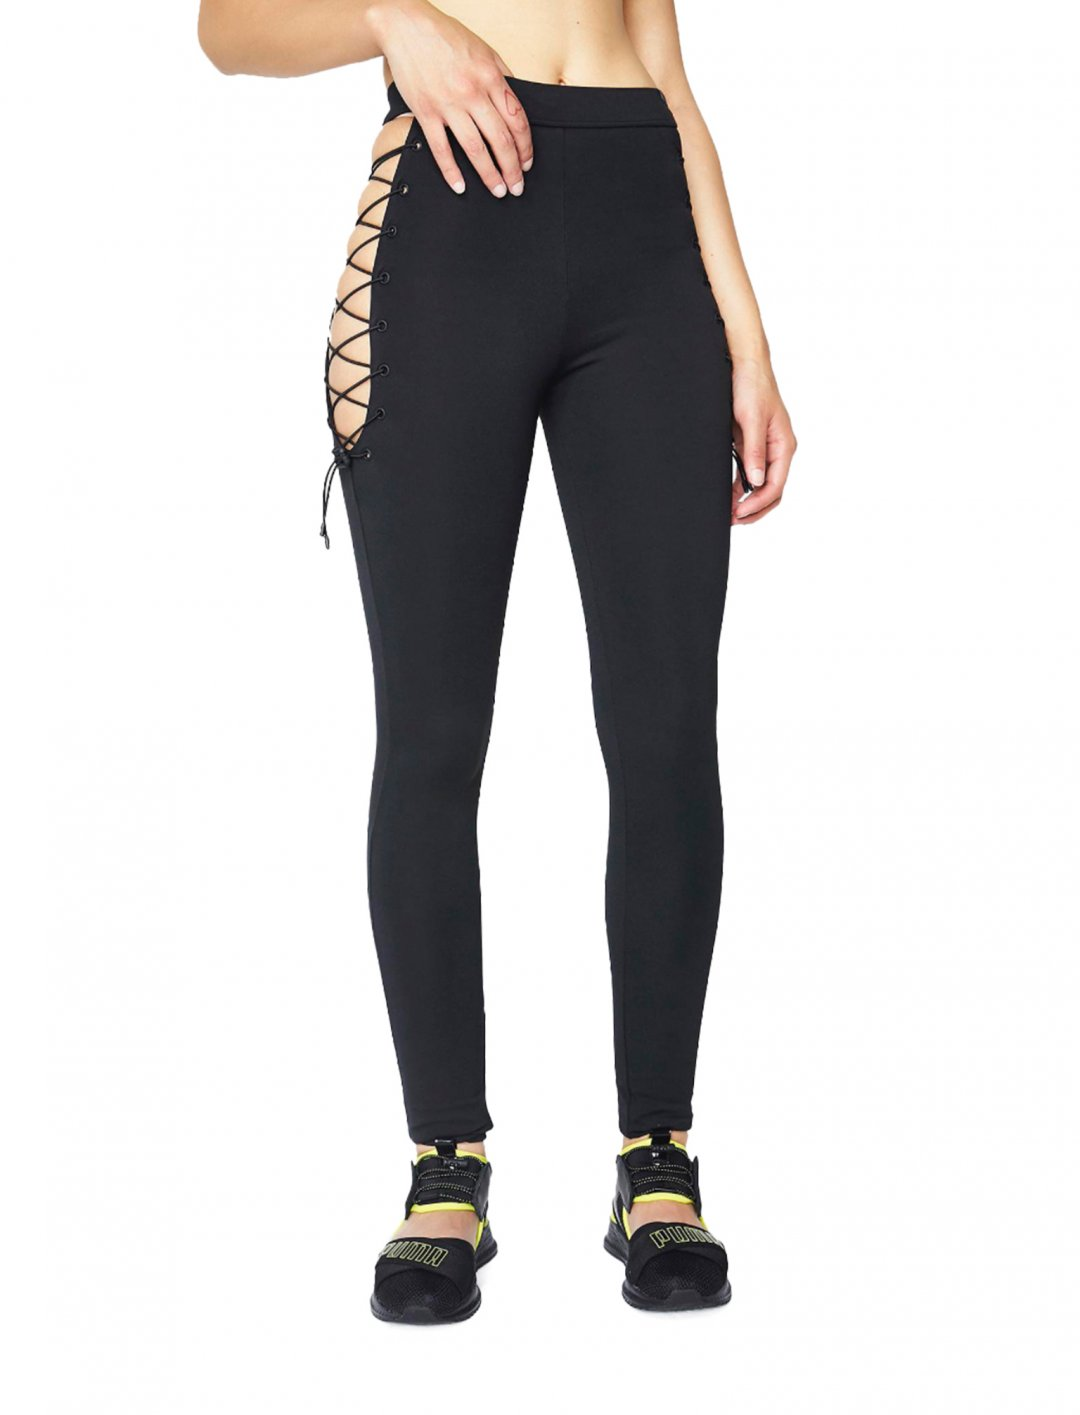 "Era's Side Lace Leggings {""id"":5,""product_section_id"":1,""name"":""Clothing"",""order"":5} Puma"